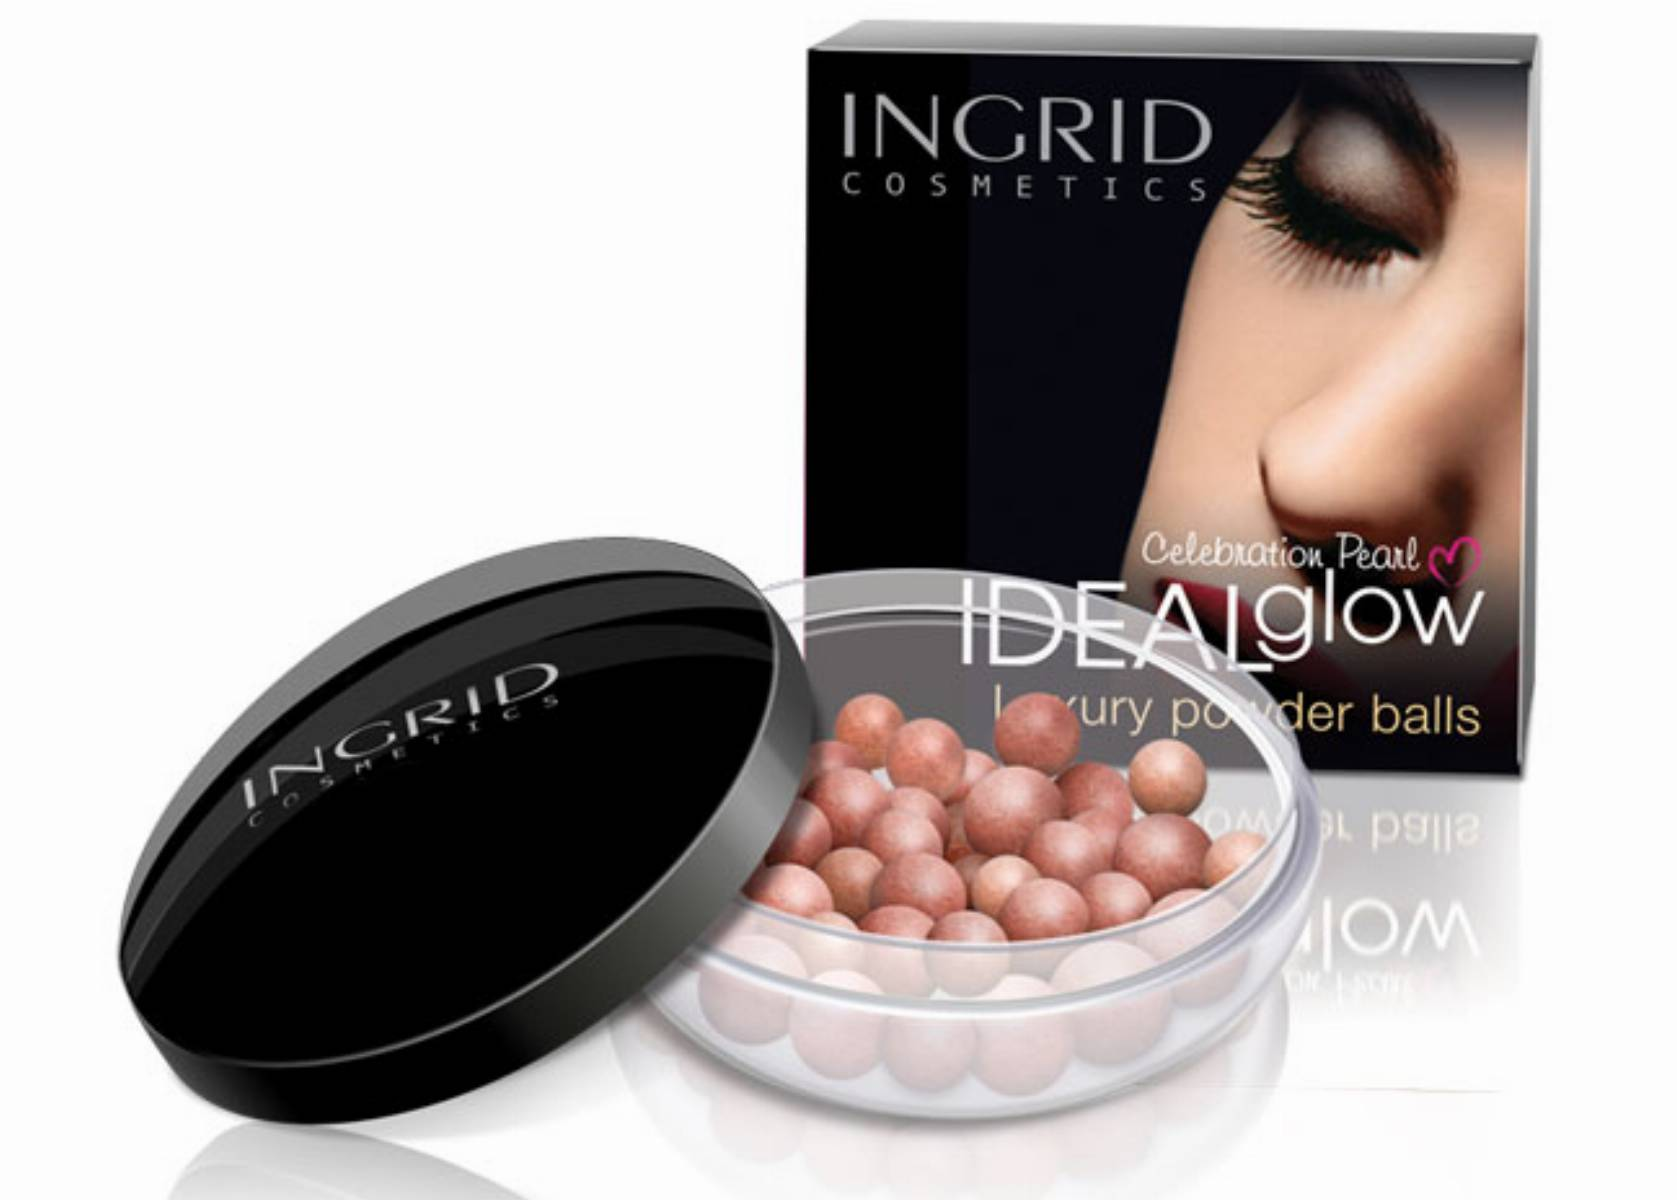 Puder w kulkach IDEAL glow Celebration Pearl INGRID